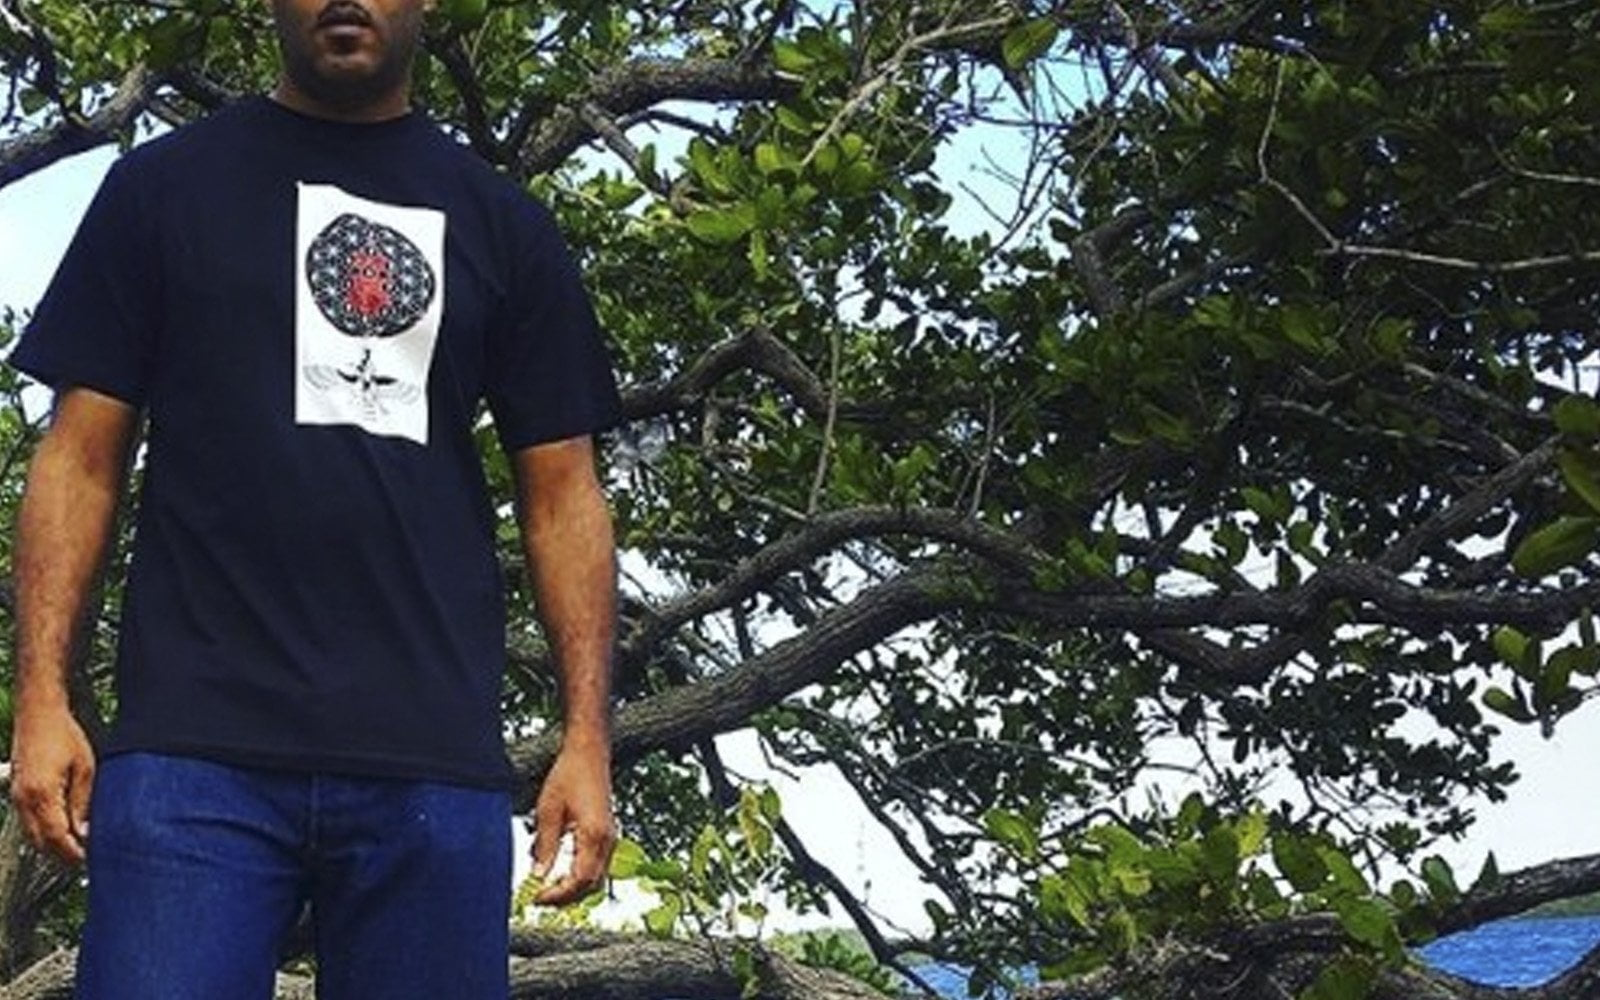 Annunaki Blood Tee in Black. Kenya Standing on the Banks of the Euphrates and Tigris rivers